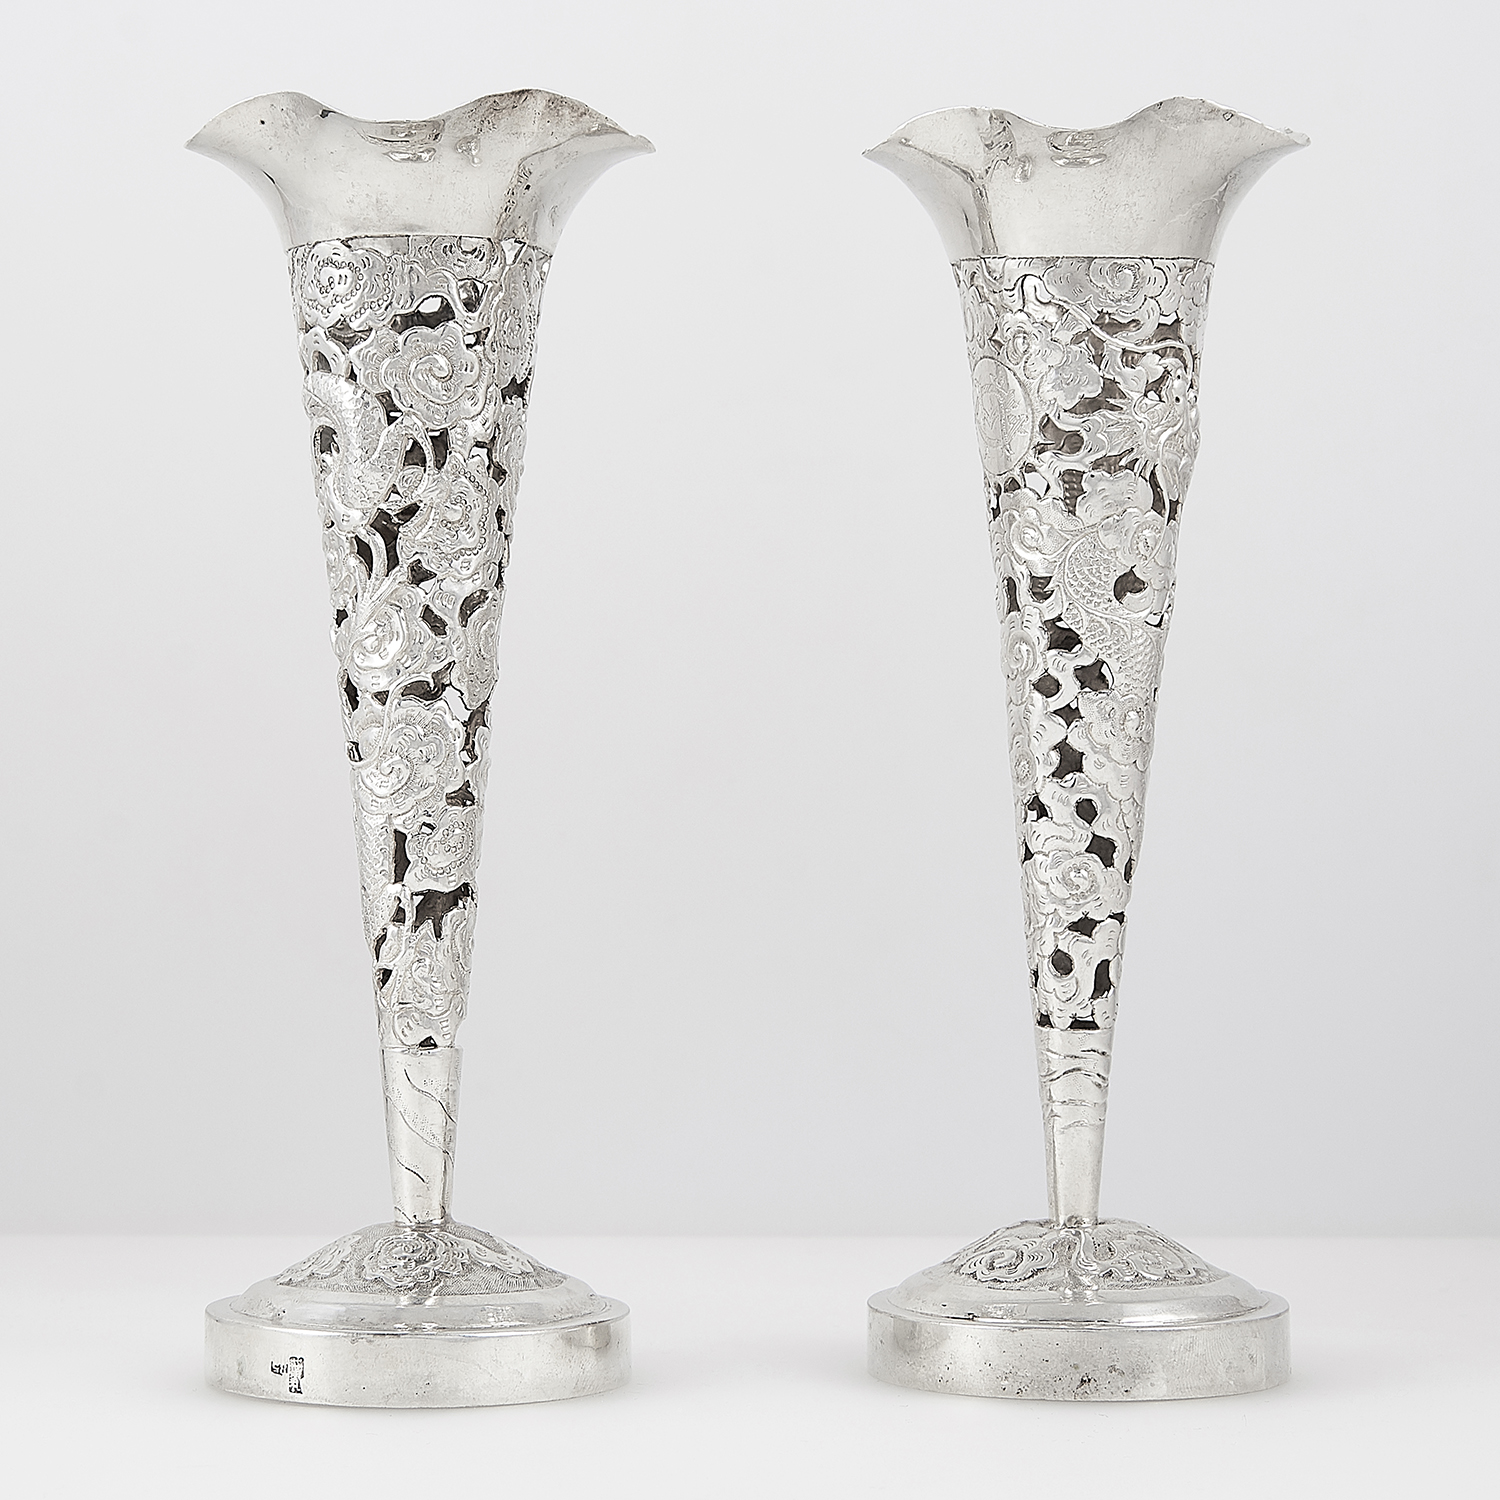 PAIR OF ANTIQUE CHINESE SILVER VASES CIRCA 1900 the fluted bodies with pierced and chased